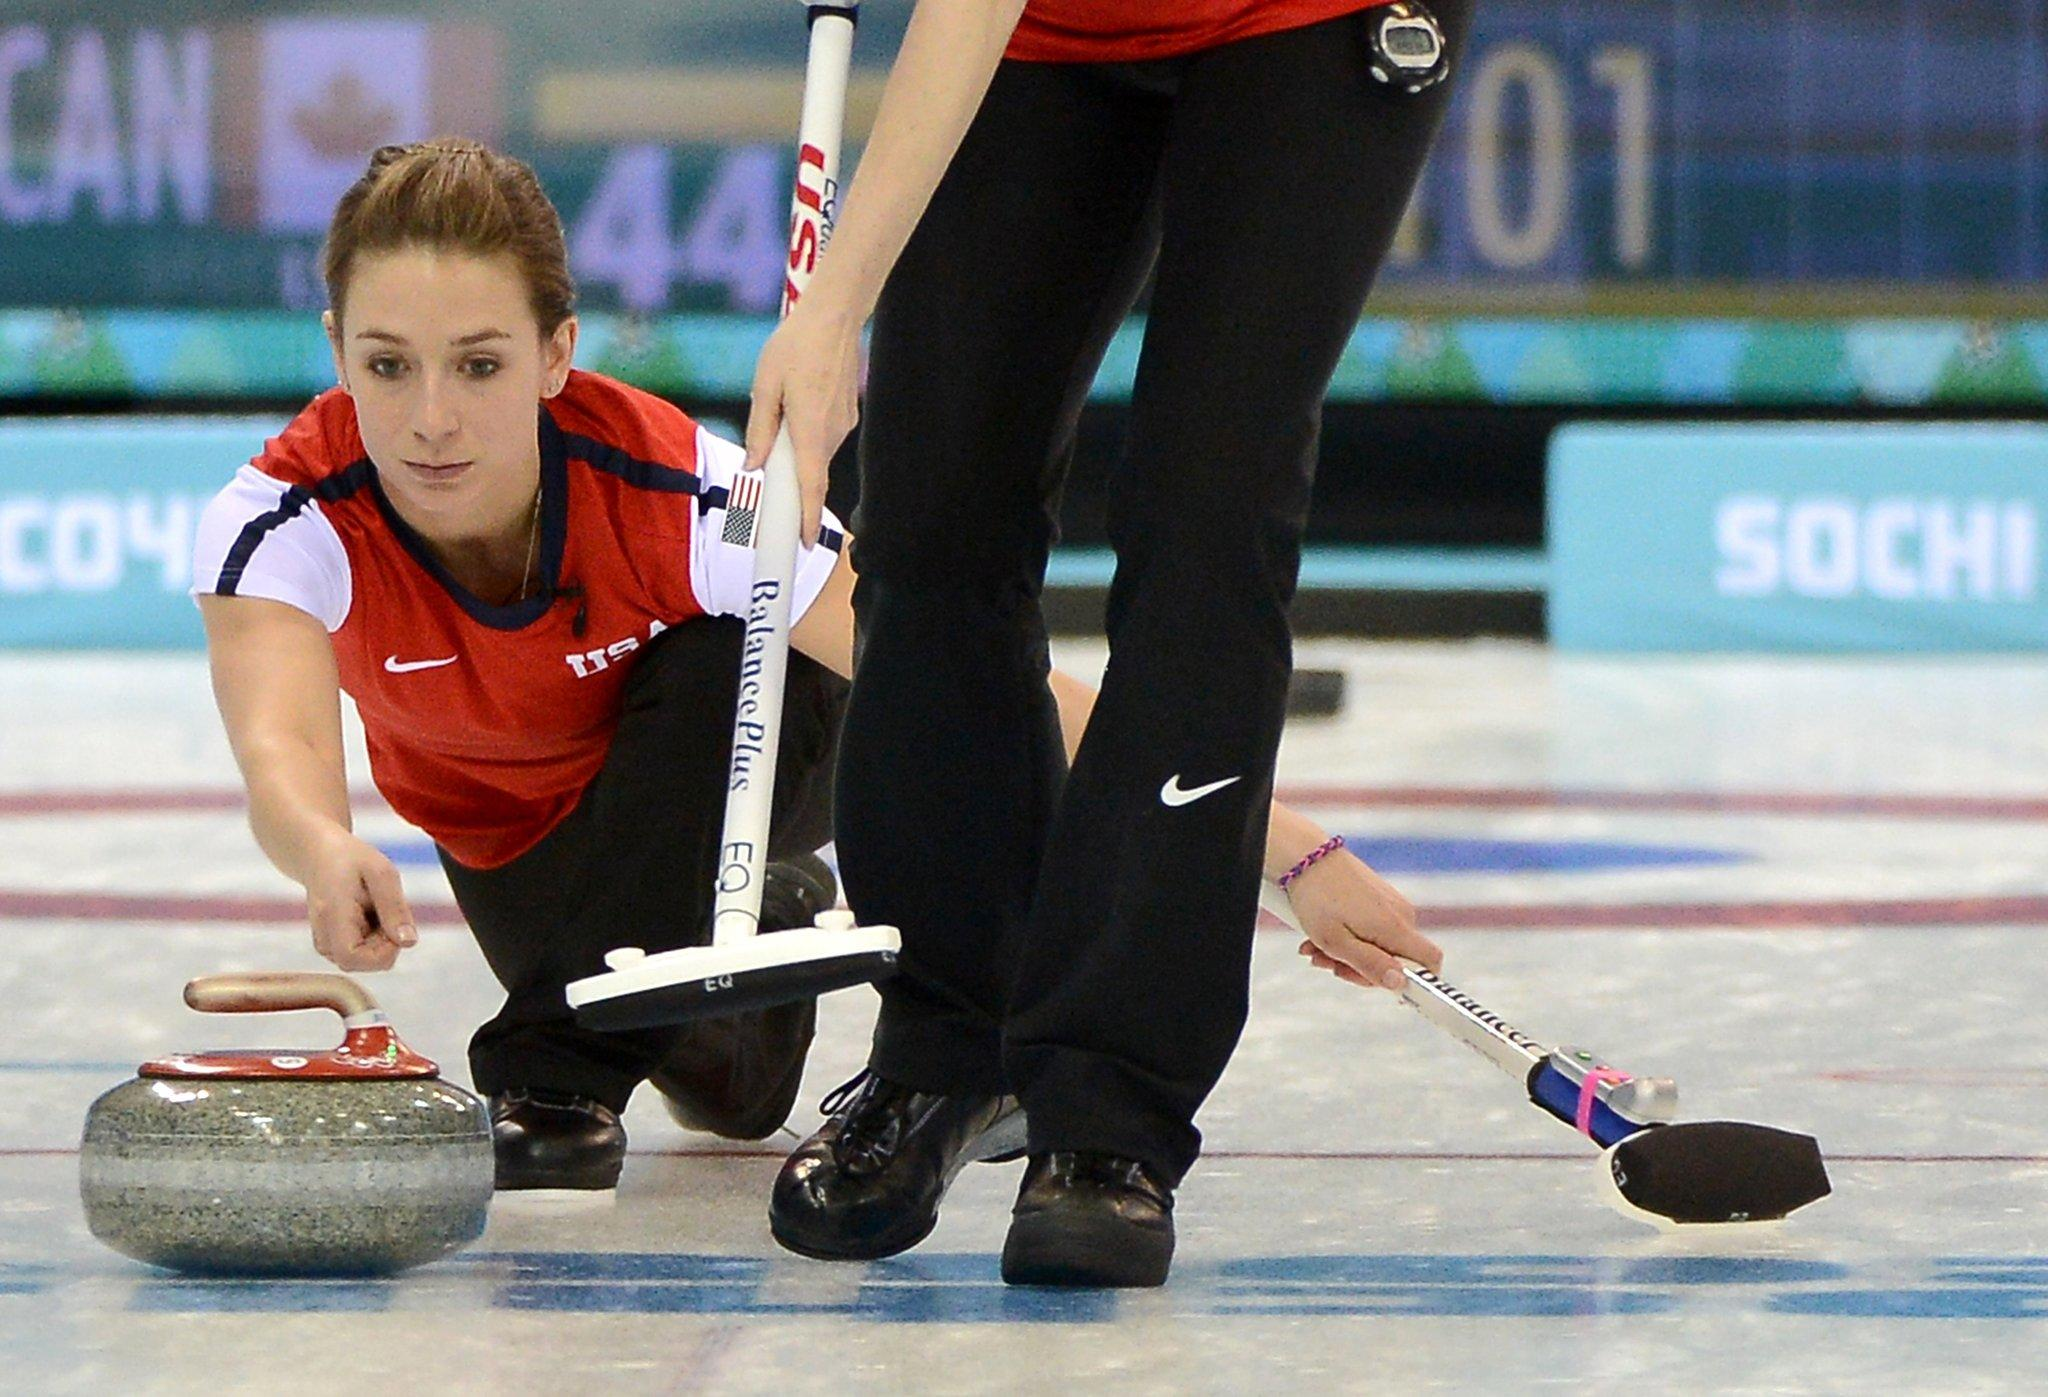 The USA's Jessica Schultz releases a stone during the game against Canada in the women's curling competition at the Ice Cube Curling Center.